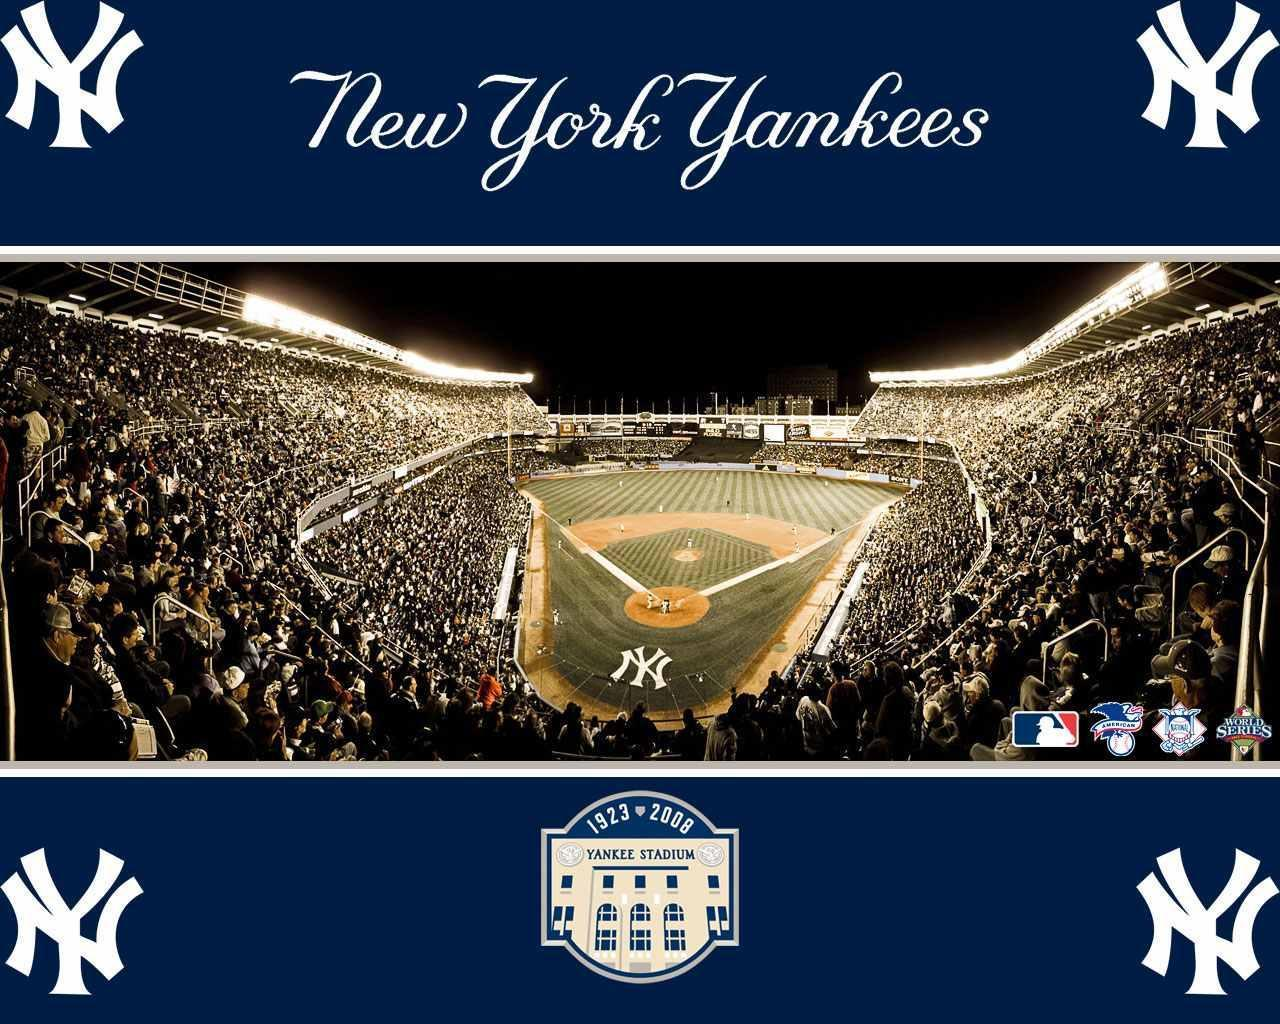 New York Yankees Images HD Wallpaper And Background Photos